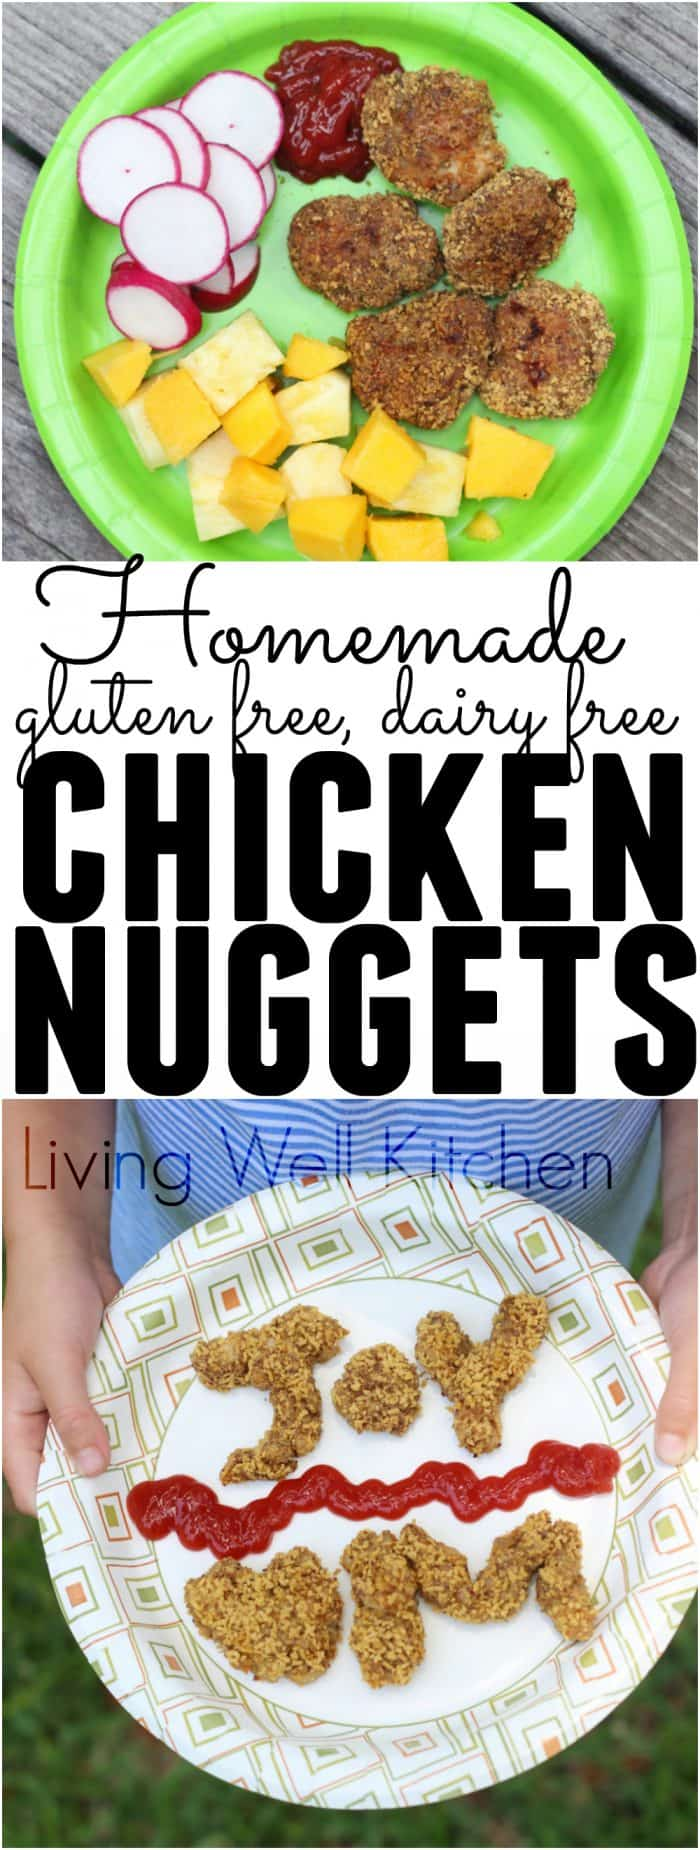 Homemade gluten-free, dairy-free chicken nuggets that use only a few ingredients and take just a little bit of time to make. Budget-friendly and delicious!